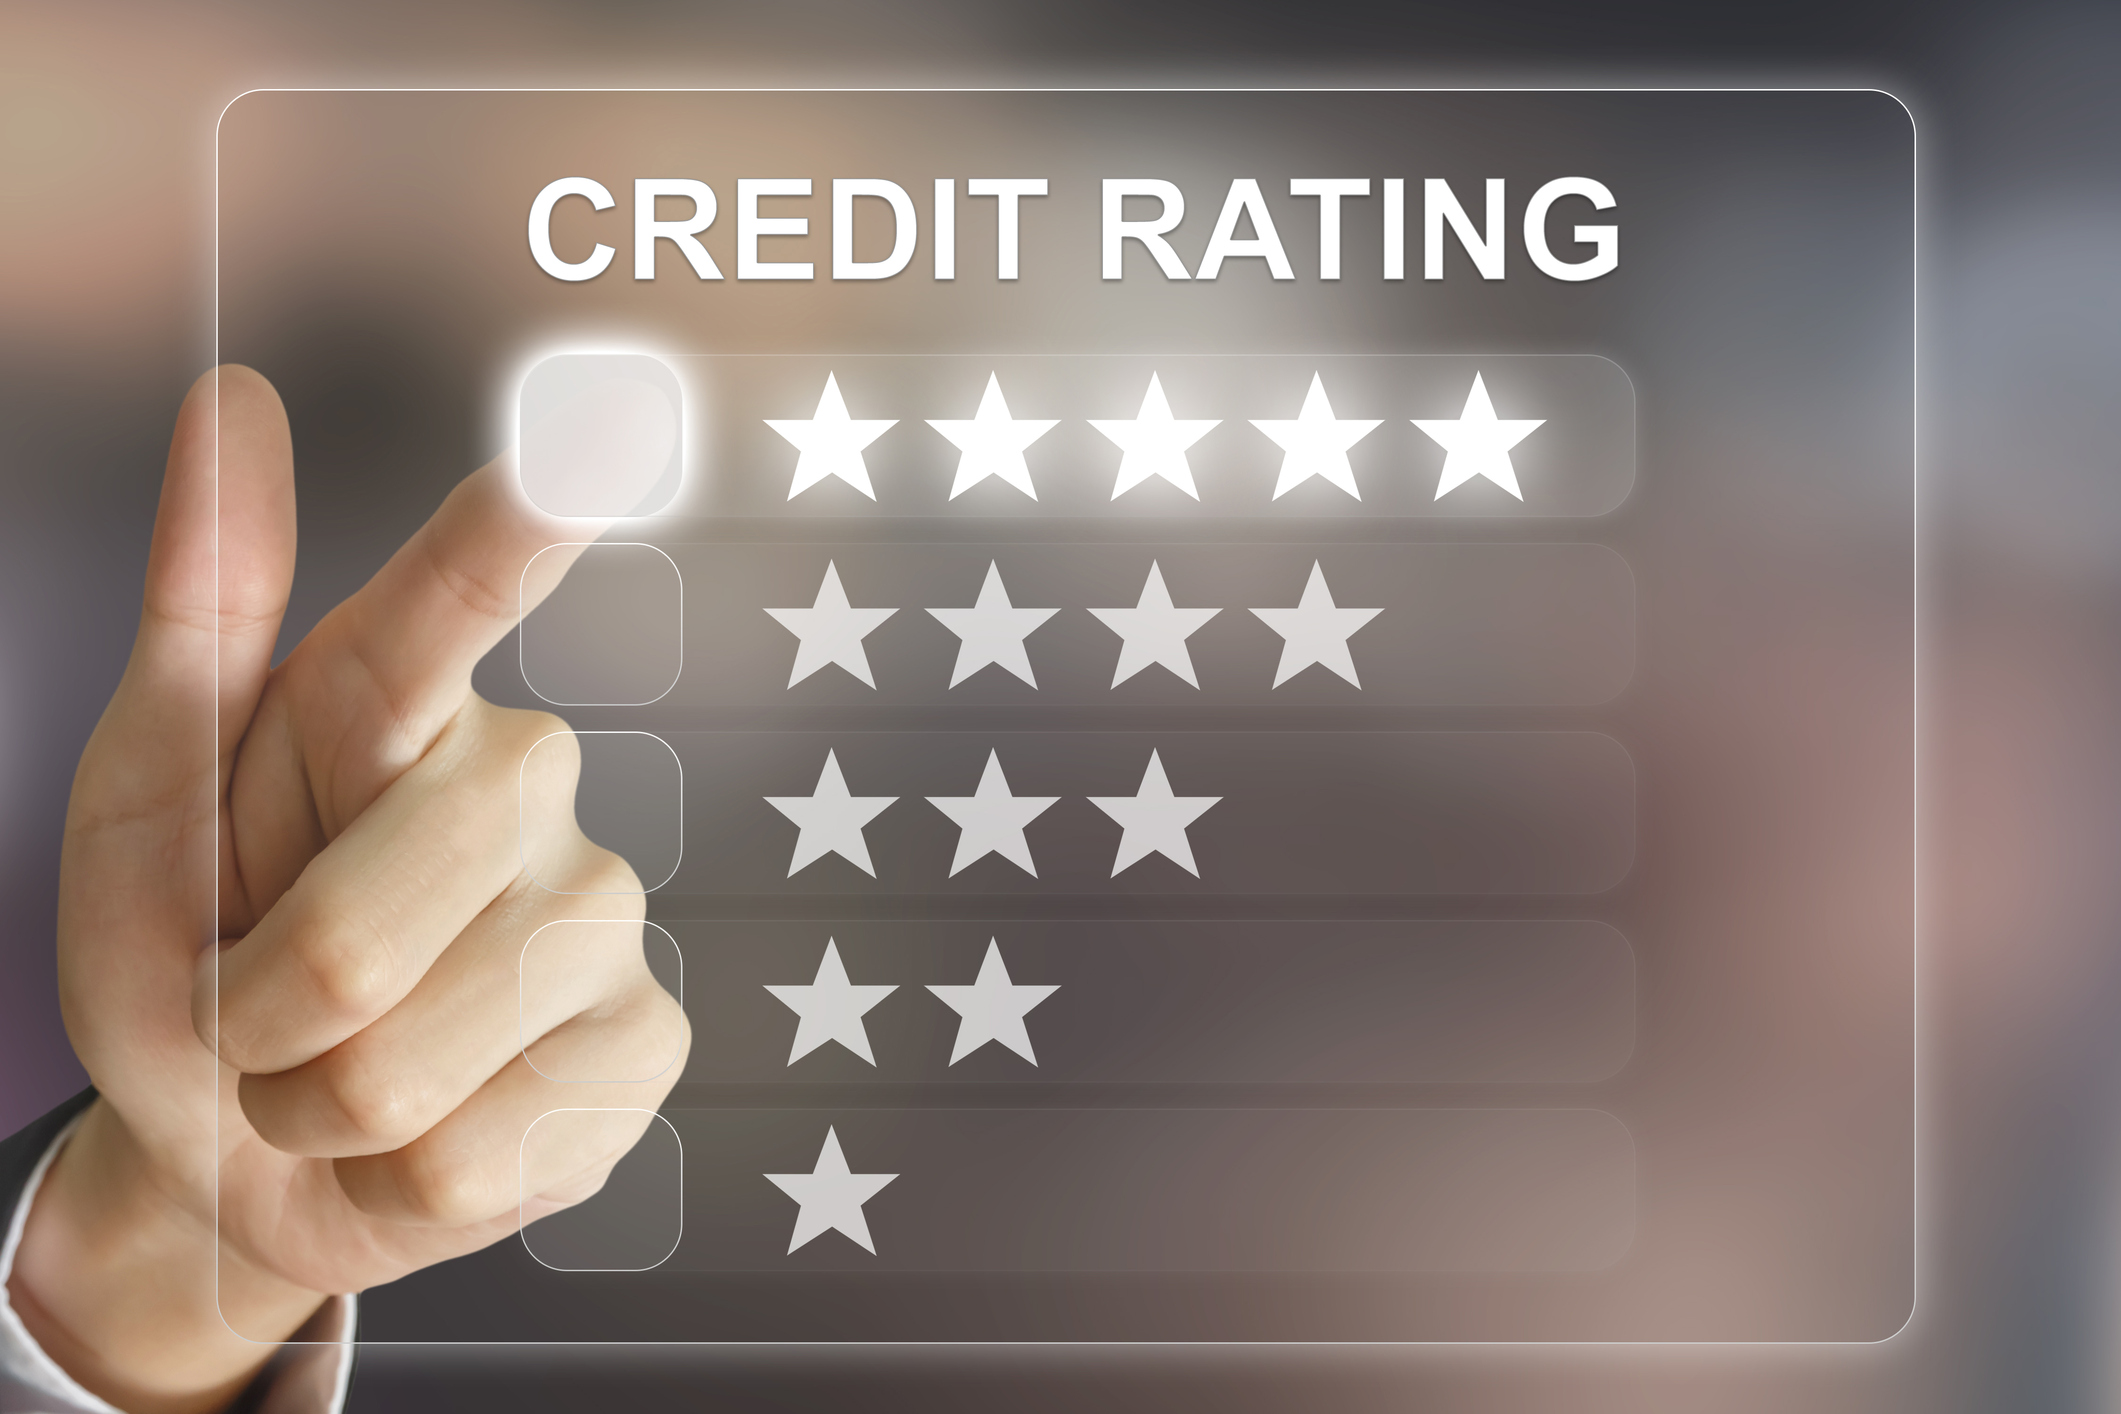 A finger pointing to a Credit Rating scoring system on a screen with one through five star options.